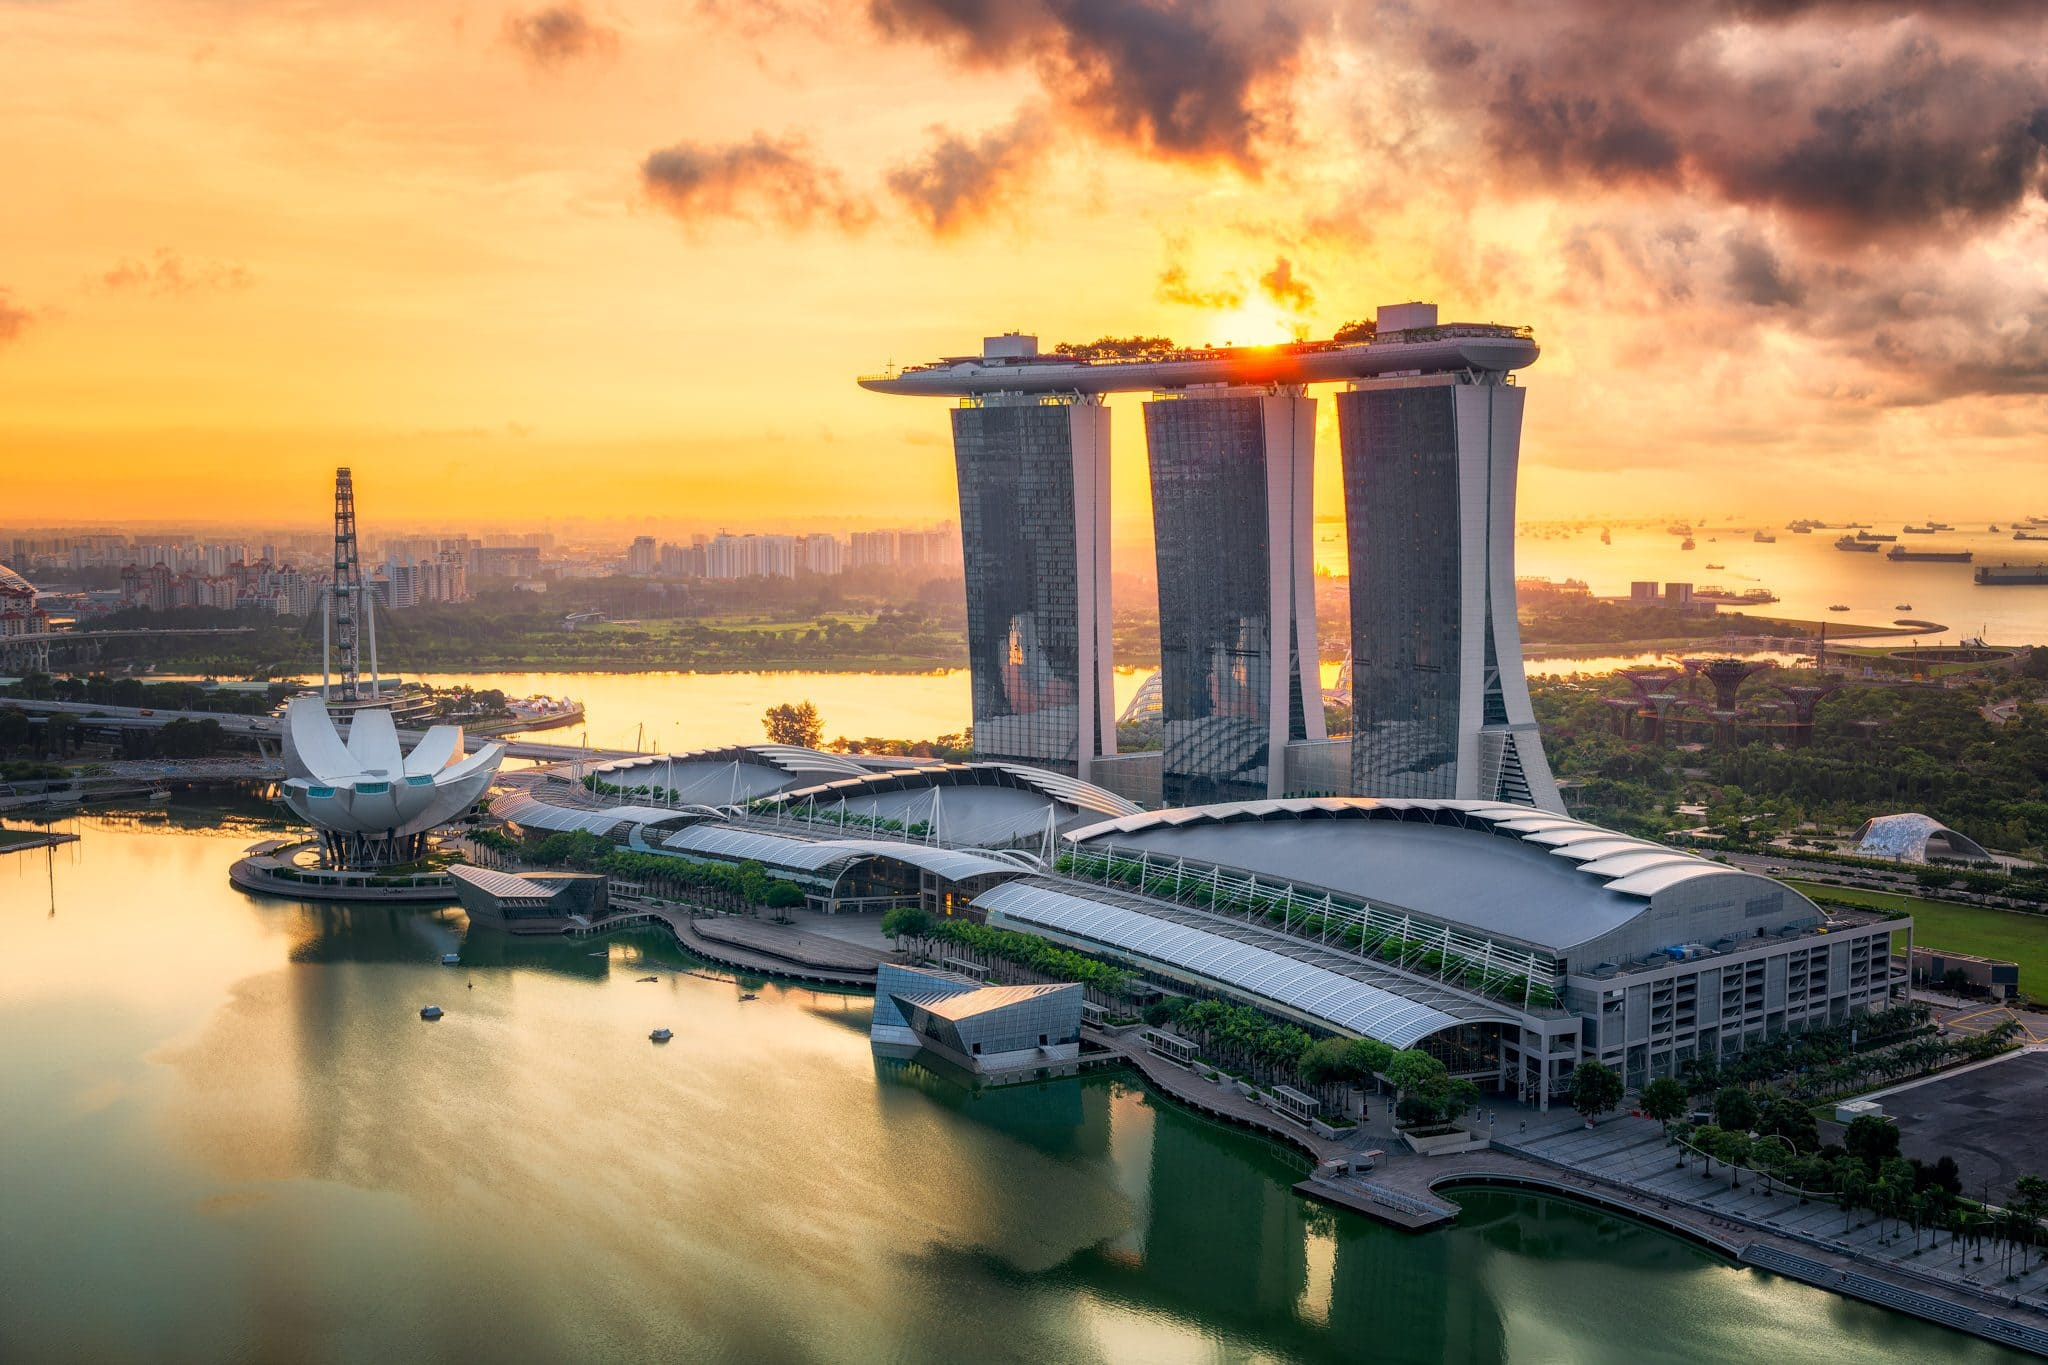 Singapore Marina Bay with Marina Bay Hotel at sunrise.